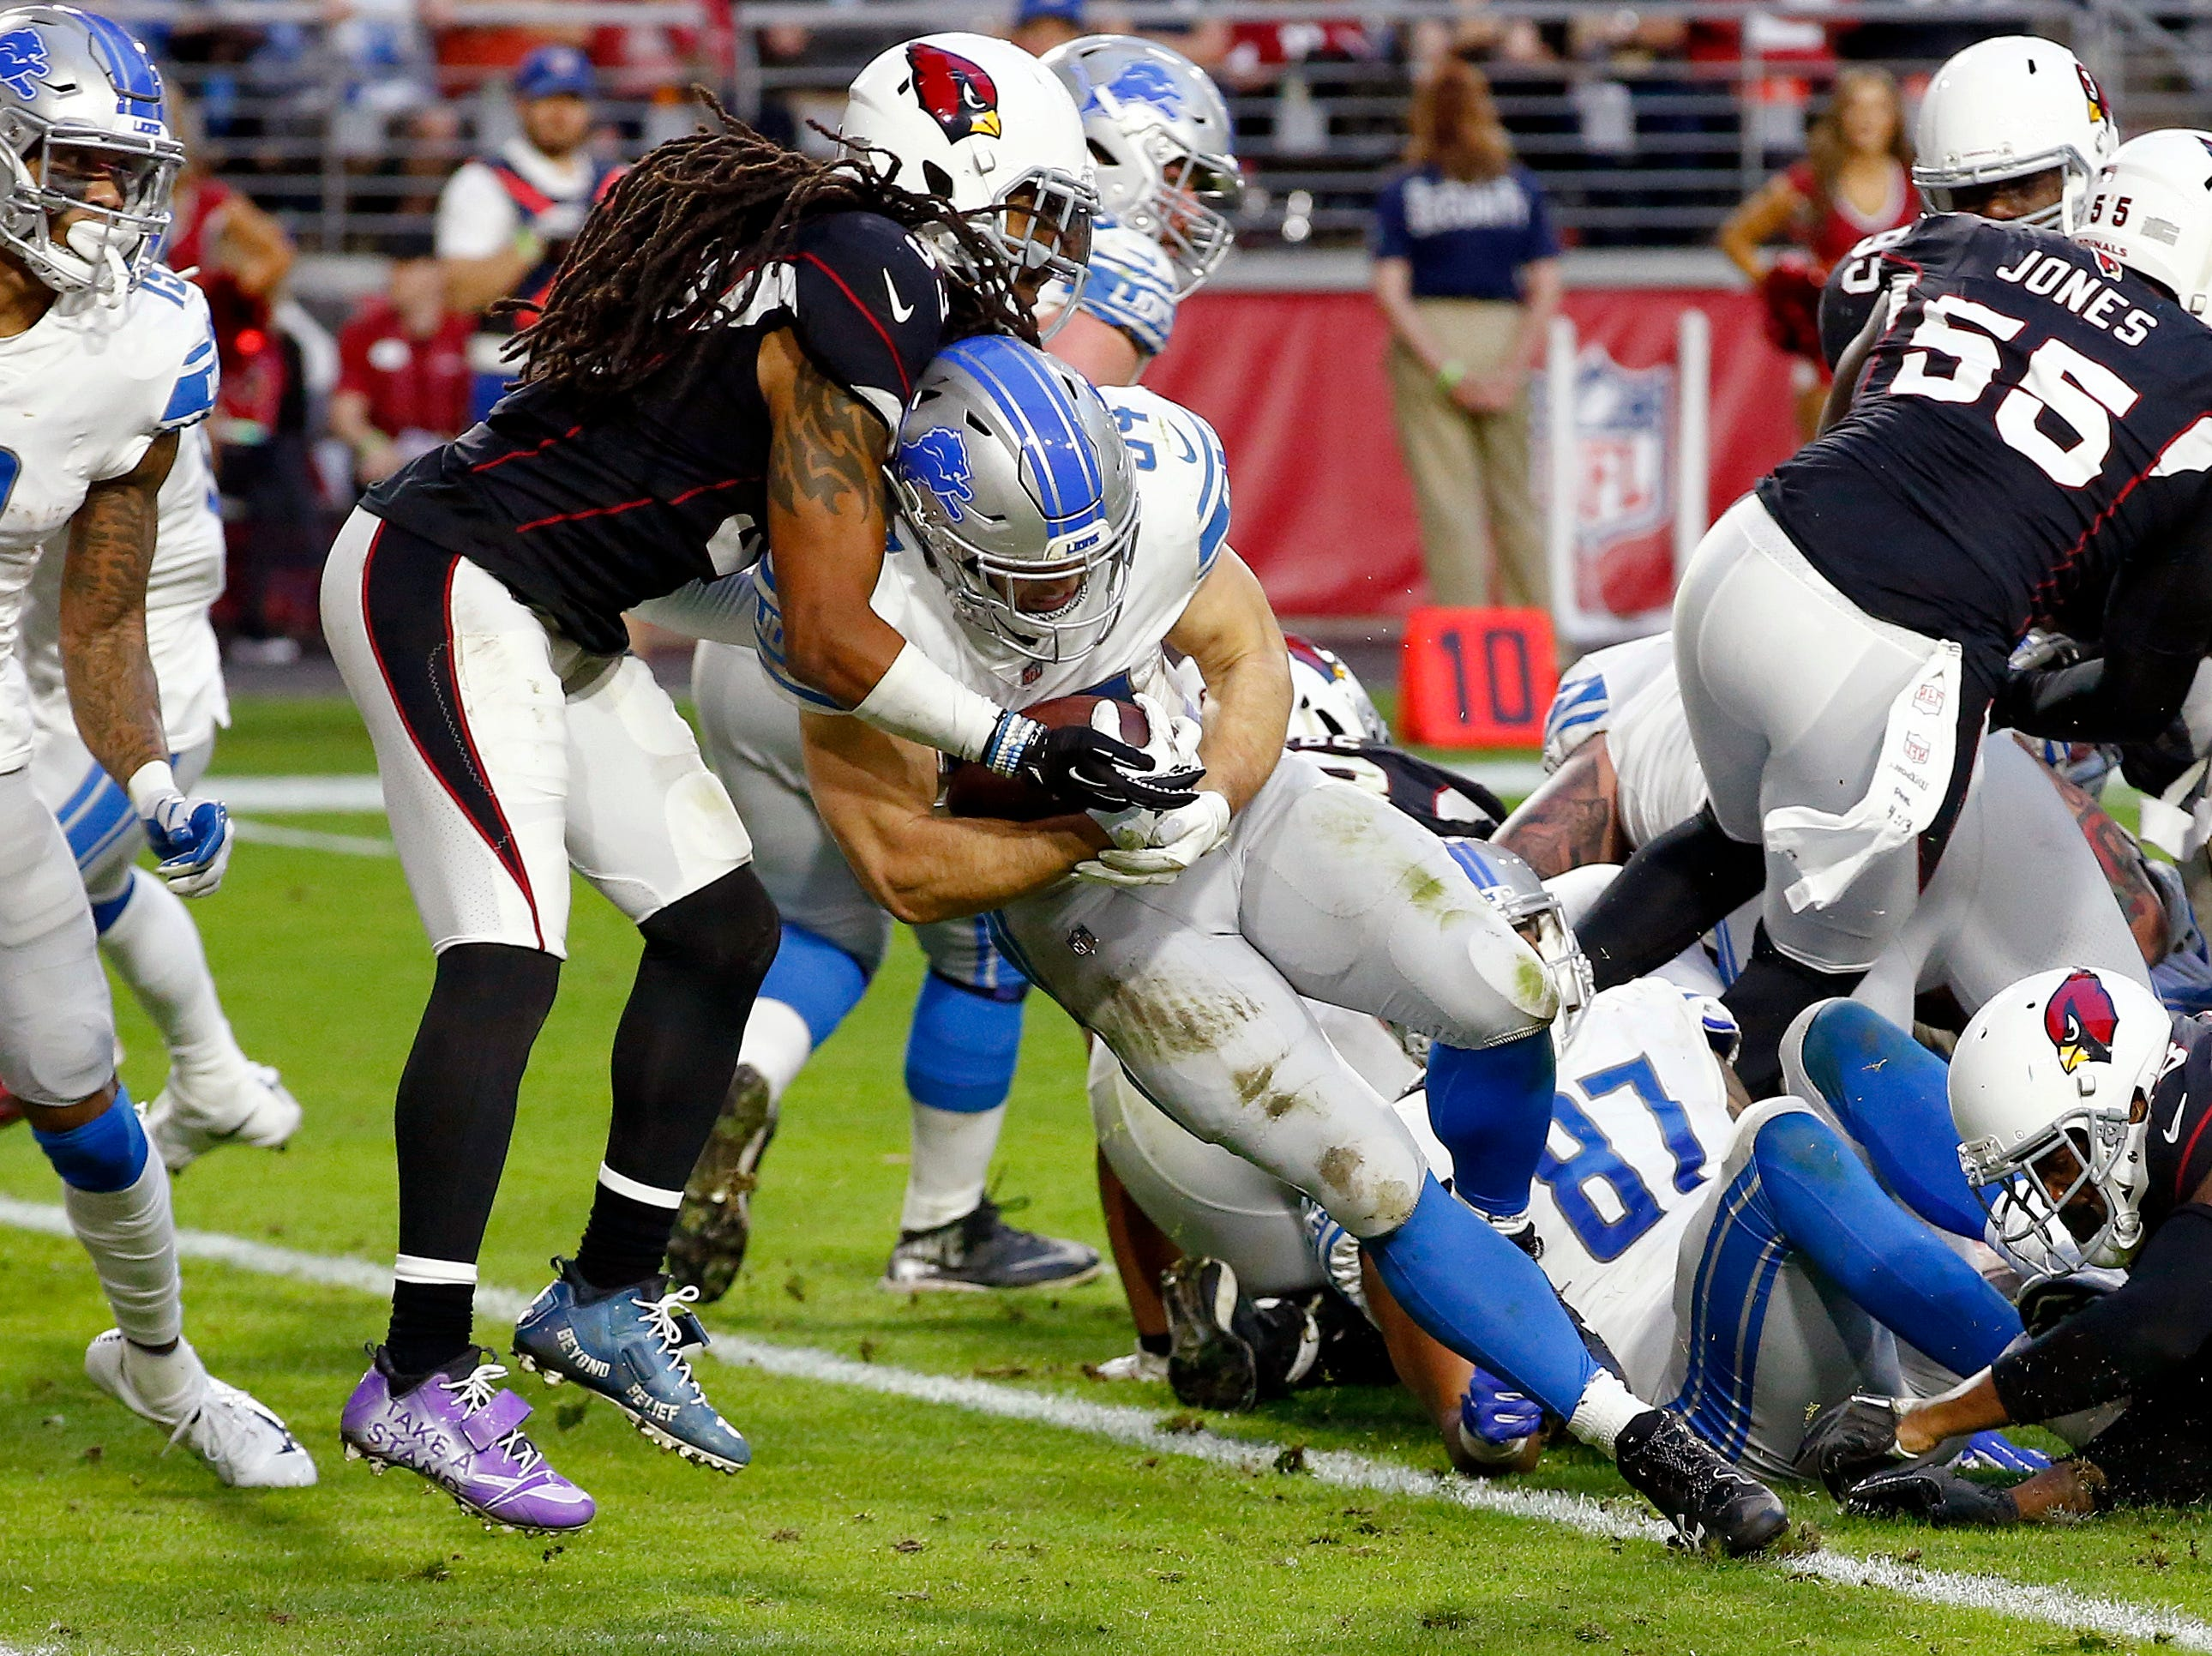 Detroit Lions running back Zach Zenner (34) scores a touchdown as Arizona Cardinals defensive back Tre Boston defends during the second half.